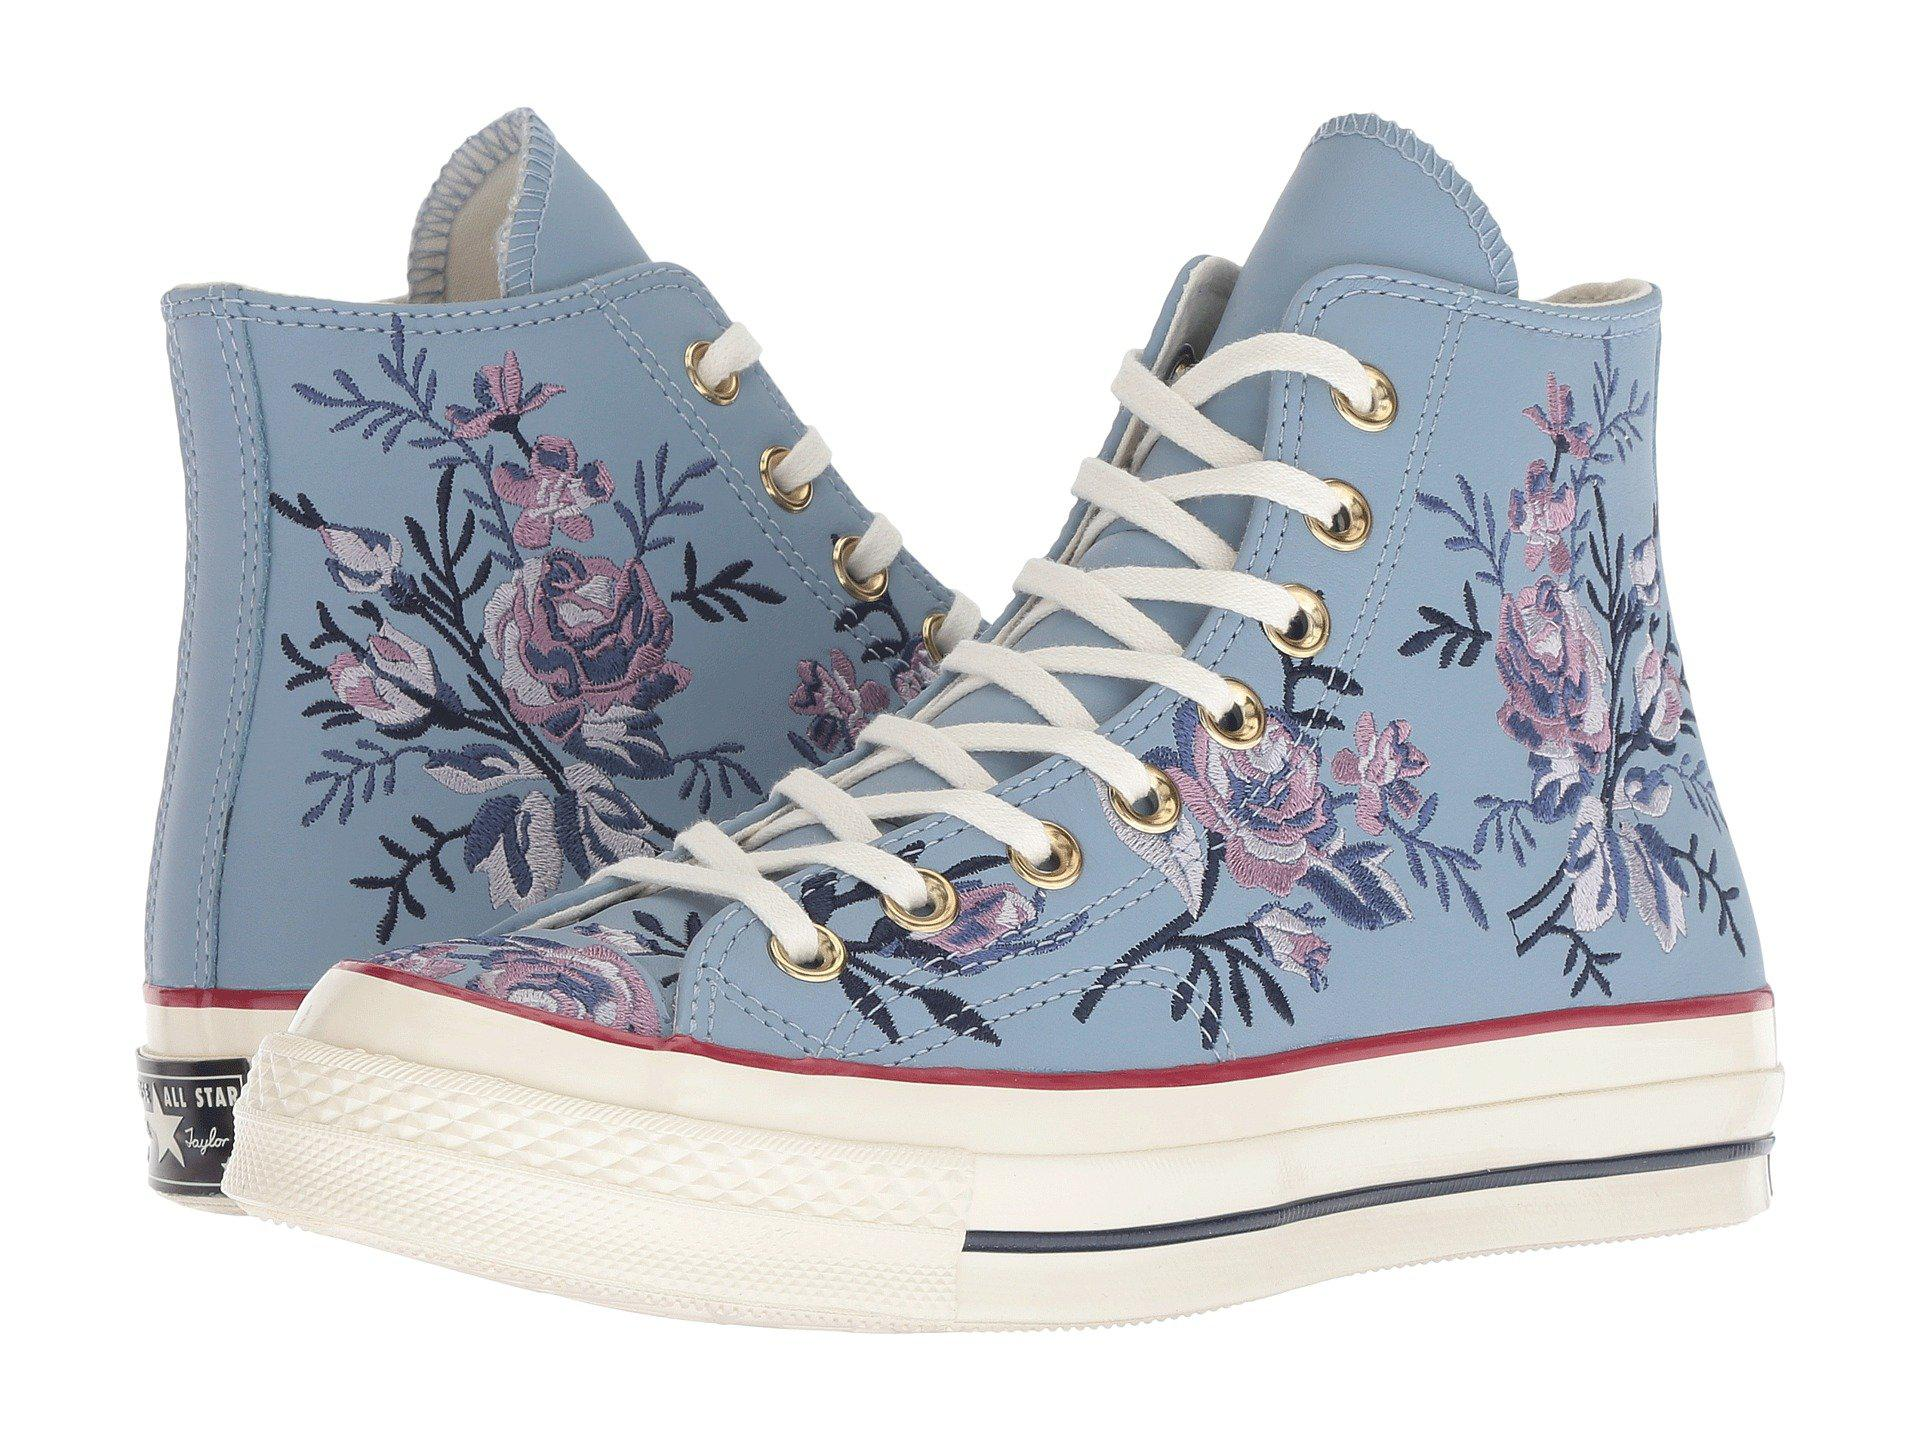 Lyst - Converse Chuck 70 - Parkway Floral Hi in Blue a5aa44b07